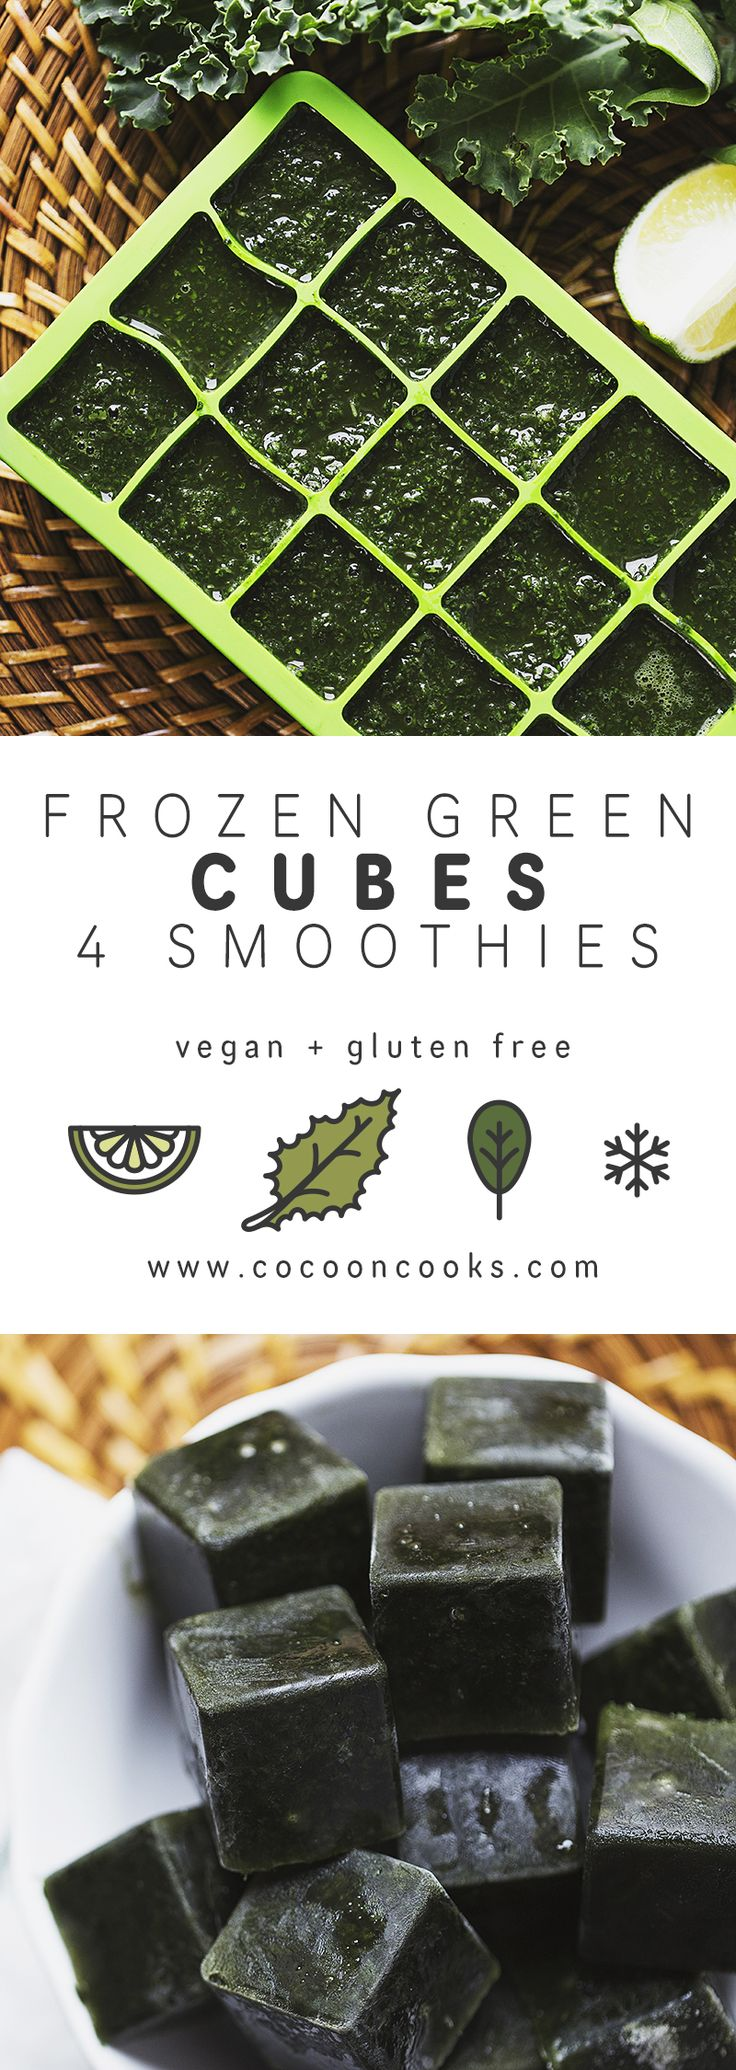 Frozen Green Cubes for Smoothies